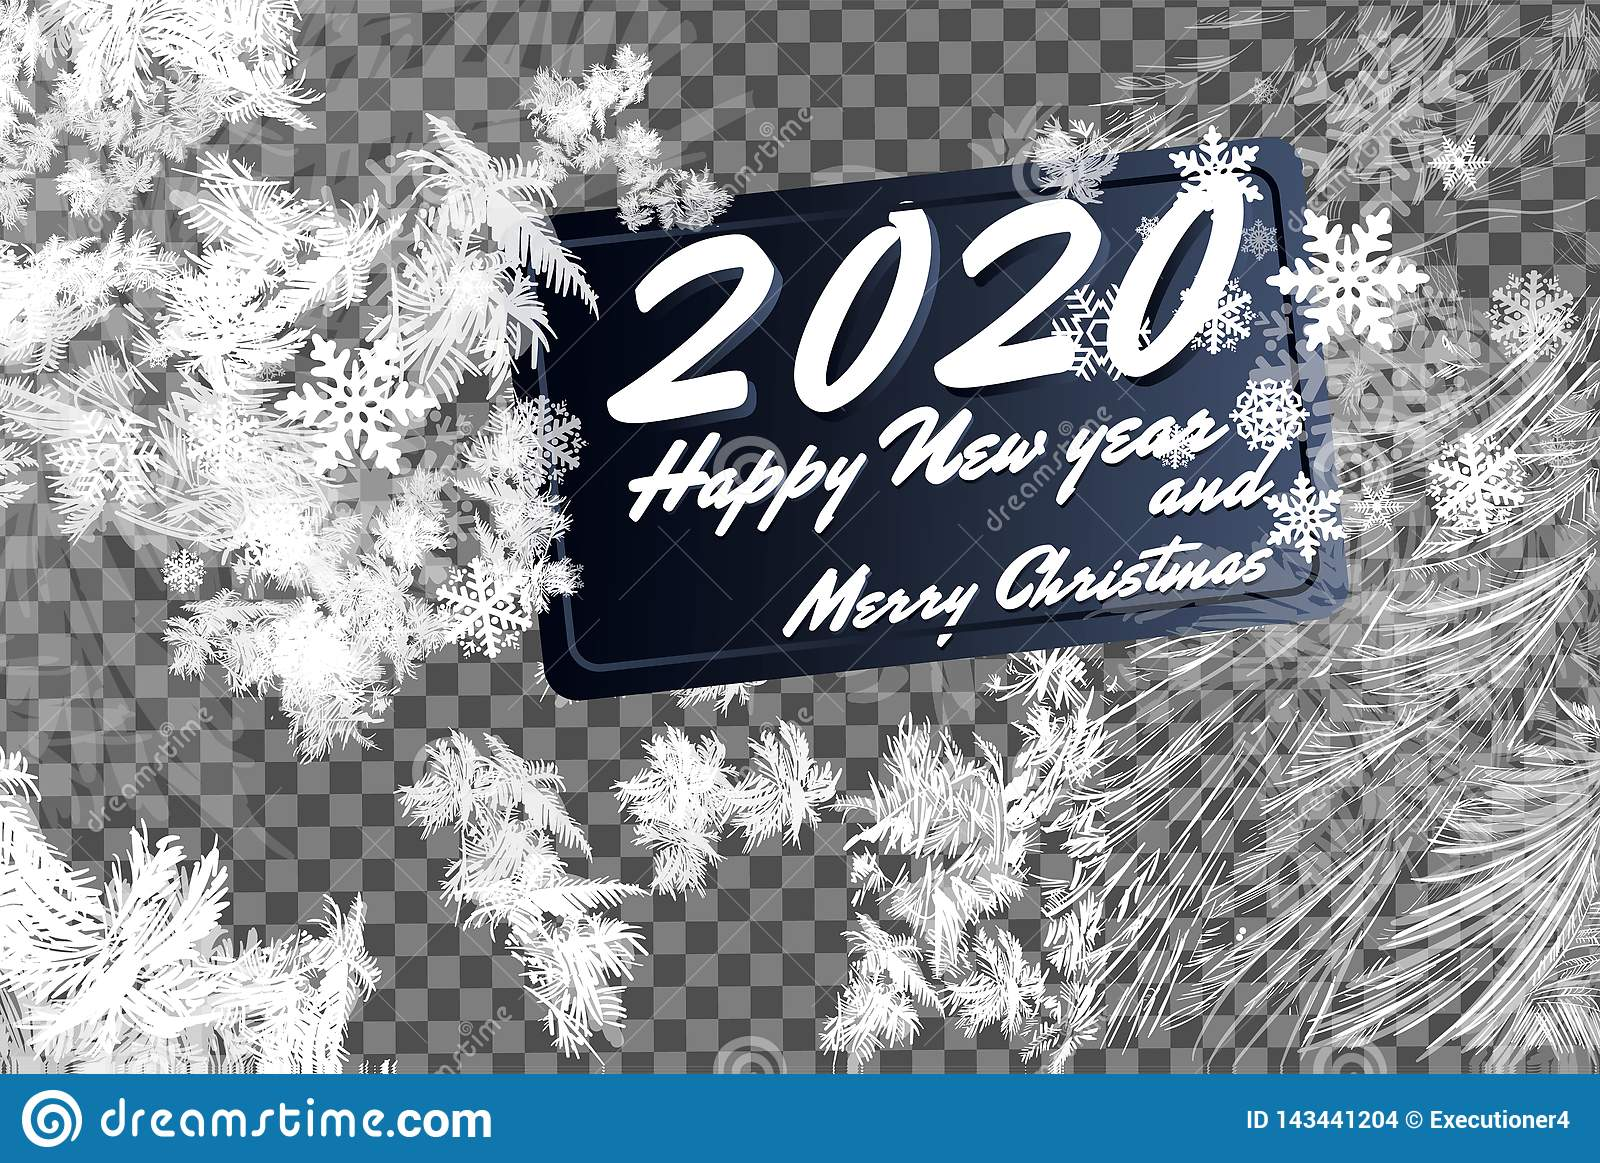 Christmas 2020 Graphic Transparent 2020 Frost Glass Pattern. Winter Frame On Transparent Background